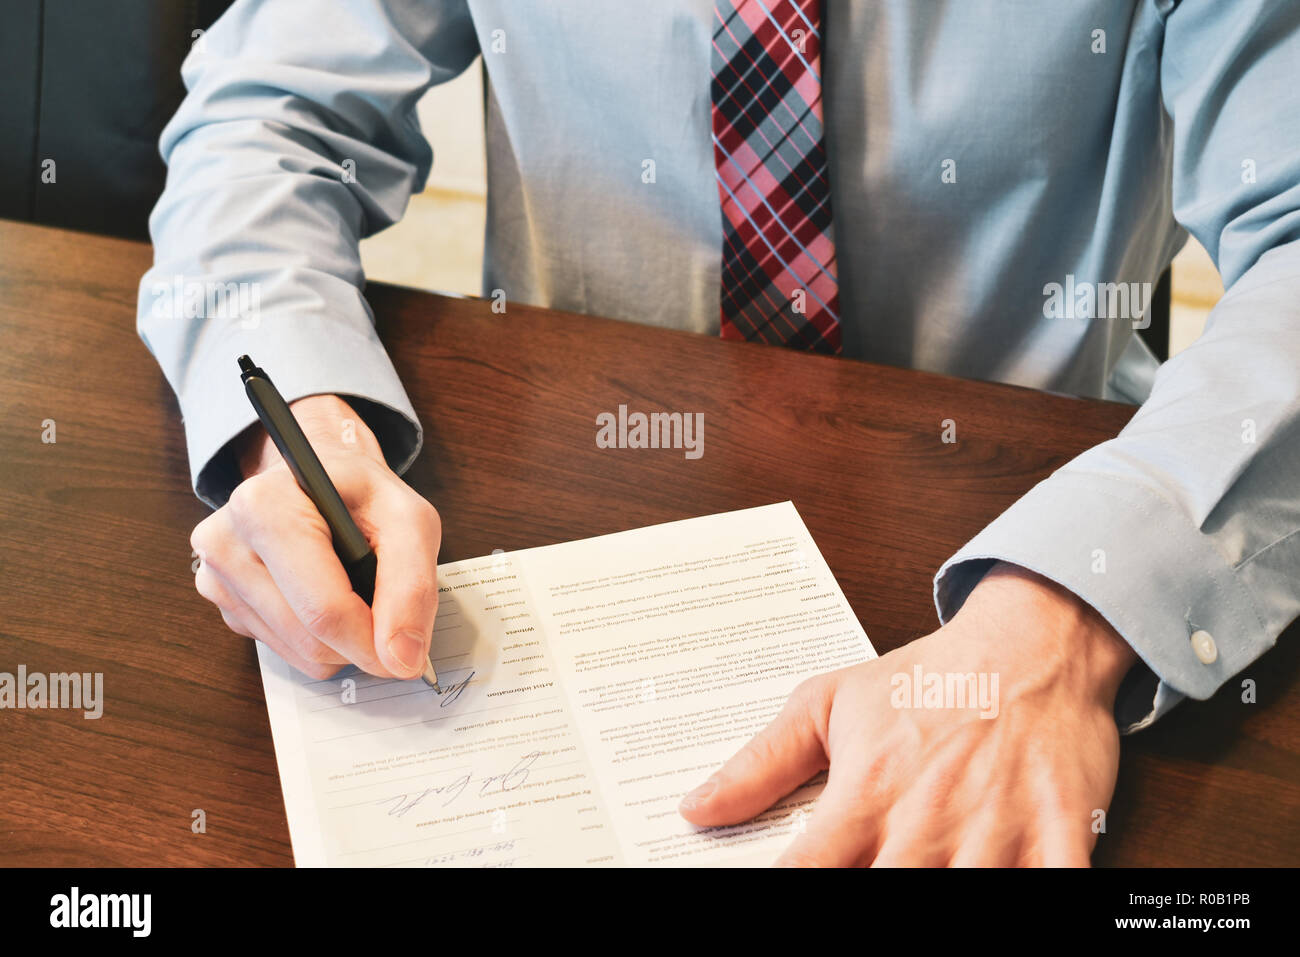 signing a paper at desk - Stock Image